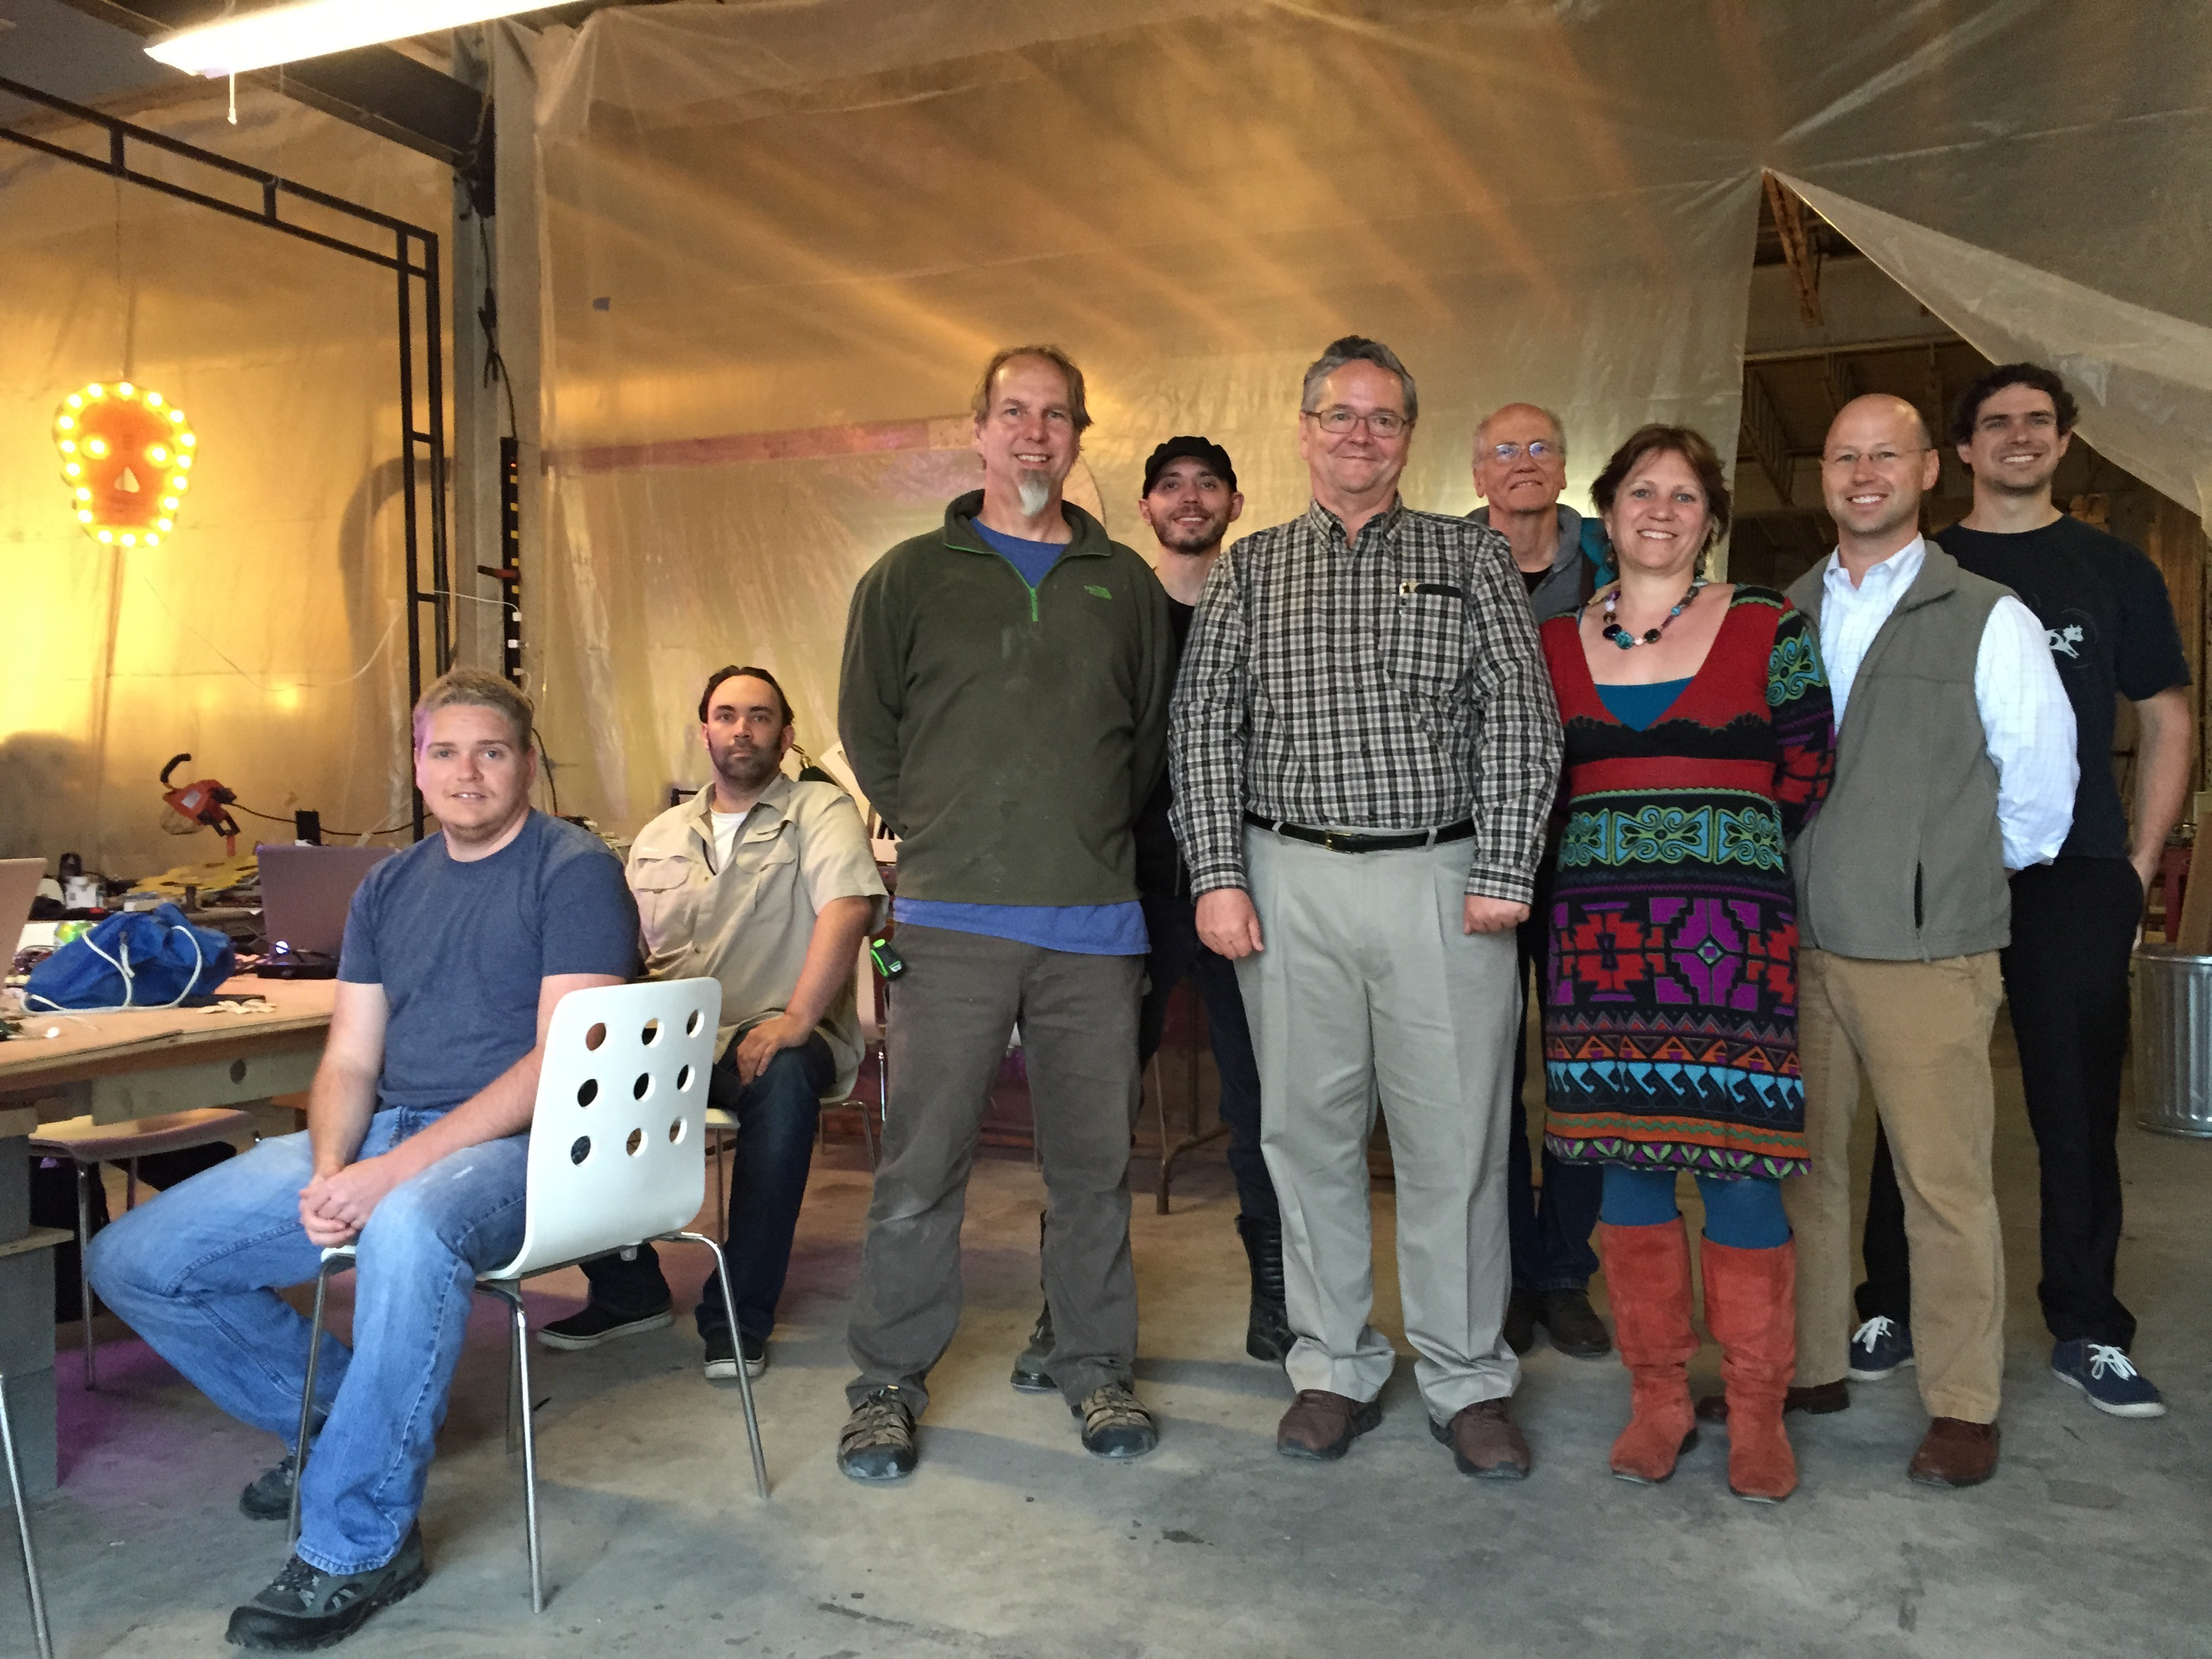 Dale Dougherty Visits Tinkersmiths Makerspace in Charlottesville VA